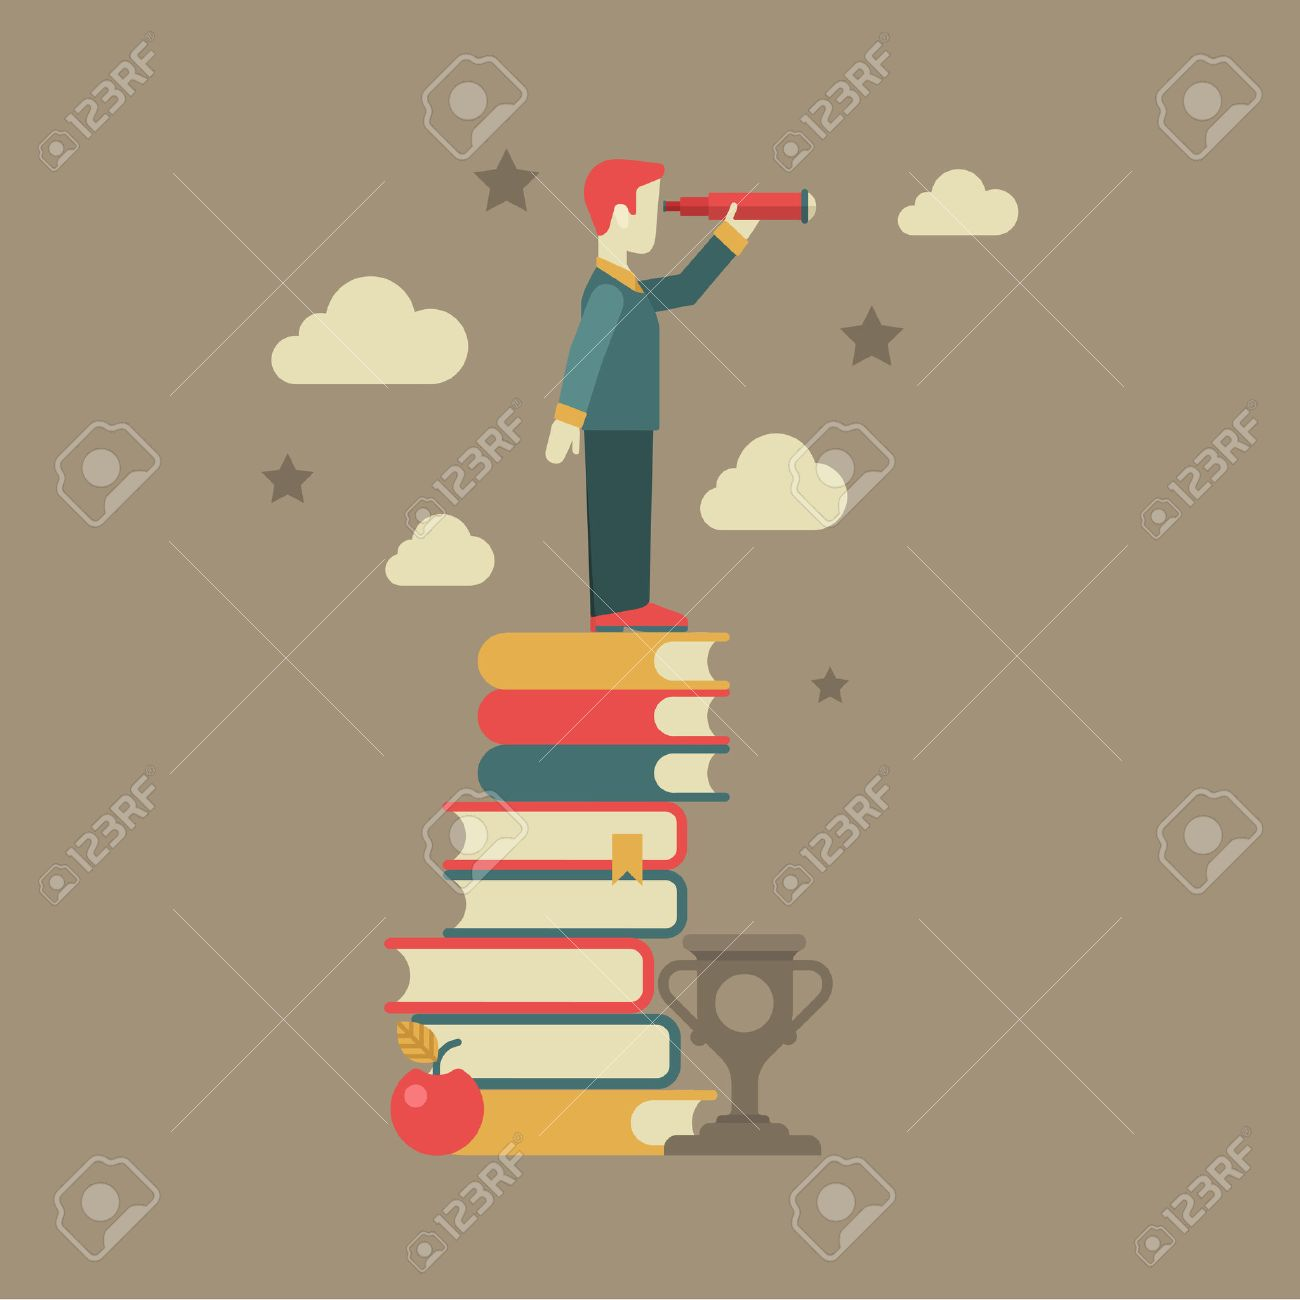 Flat education future vision concept. Man looking through spyglass stands on book heap, apple, clouds, stars, cup winner. Conceptual web illustration for power of knowledge, meaning of being educated. Stock Vector - 48577164